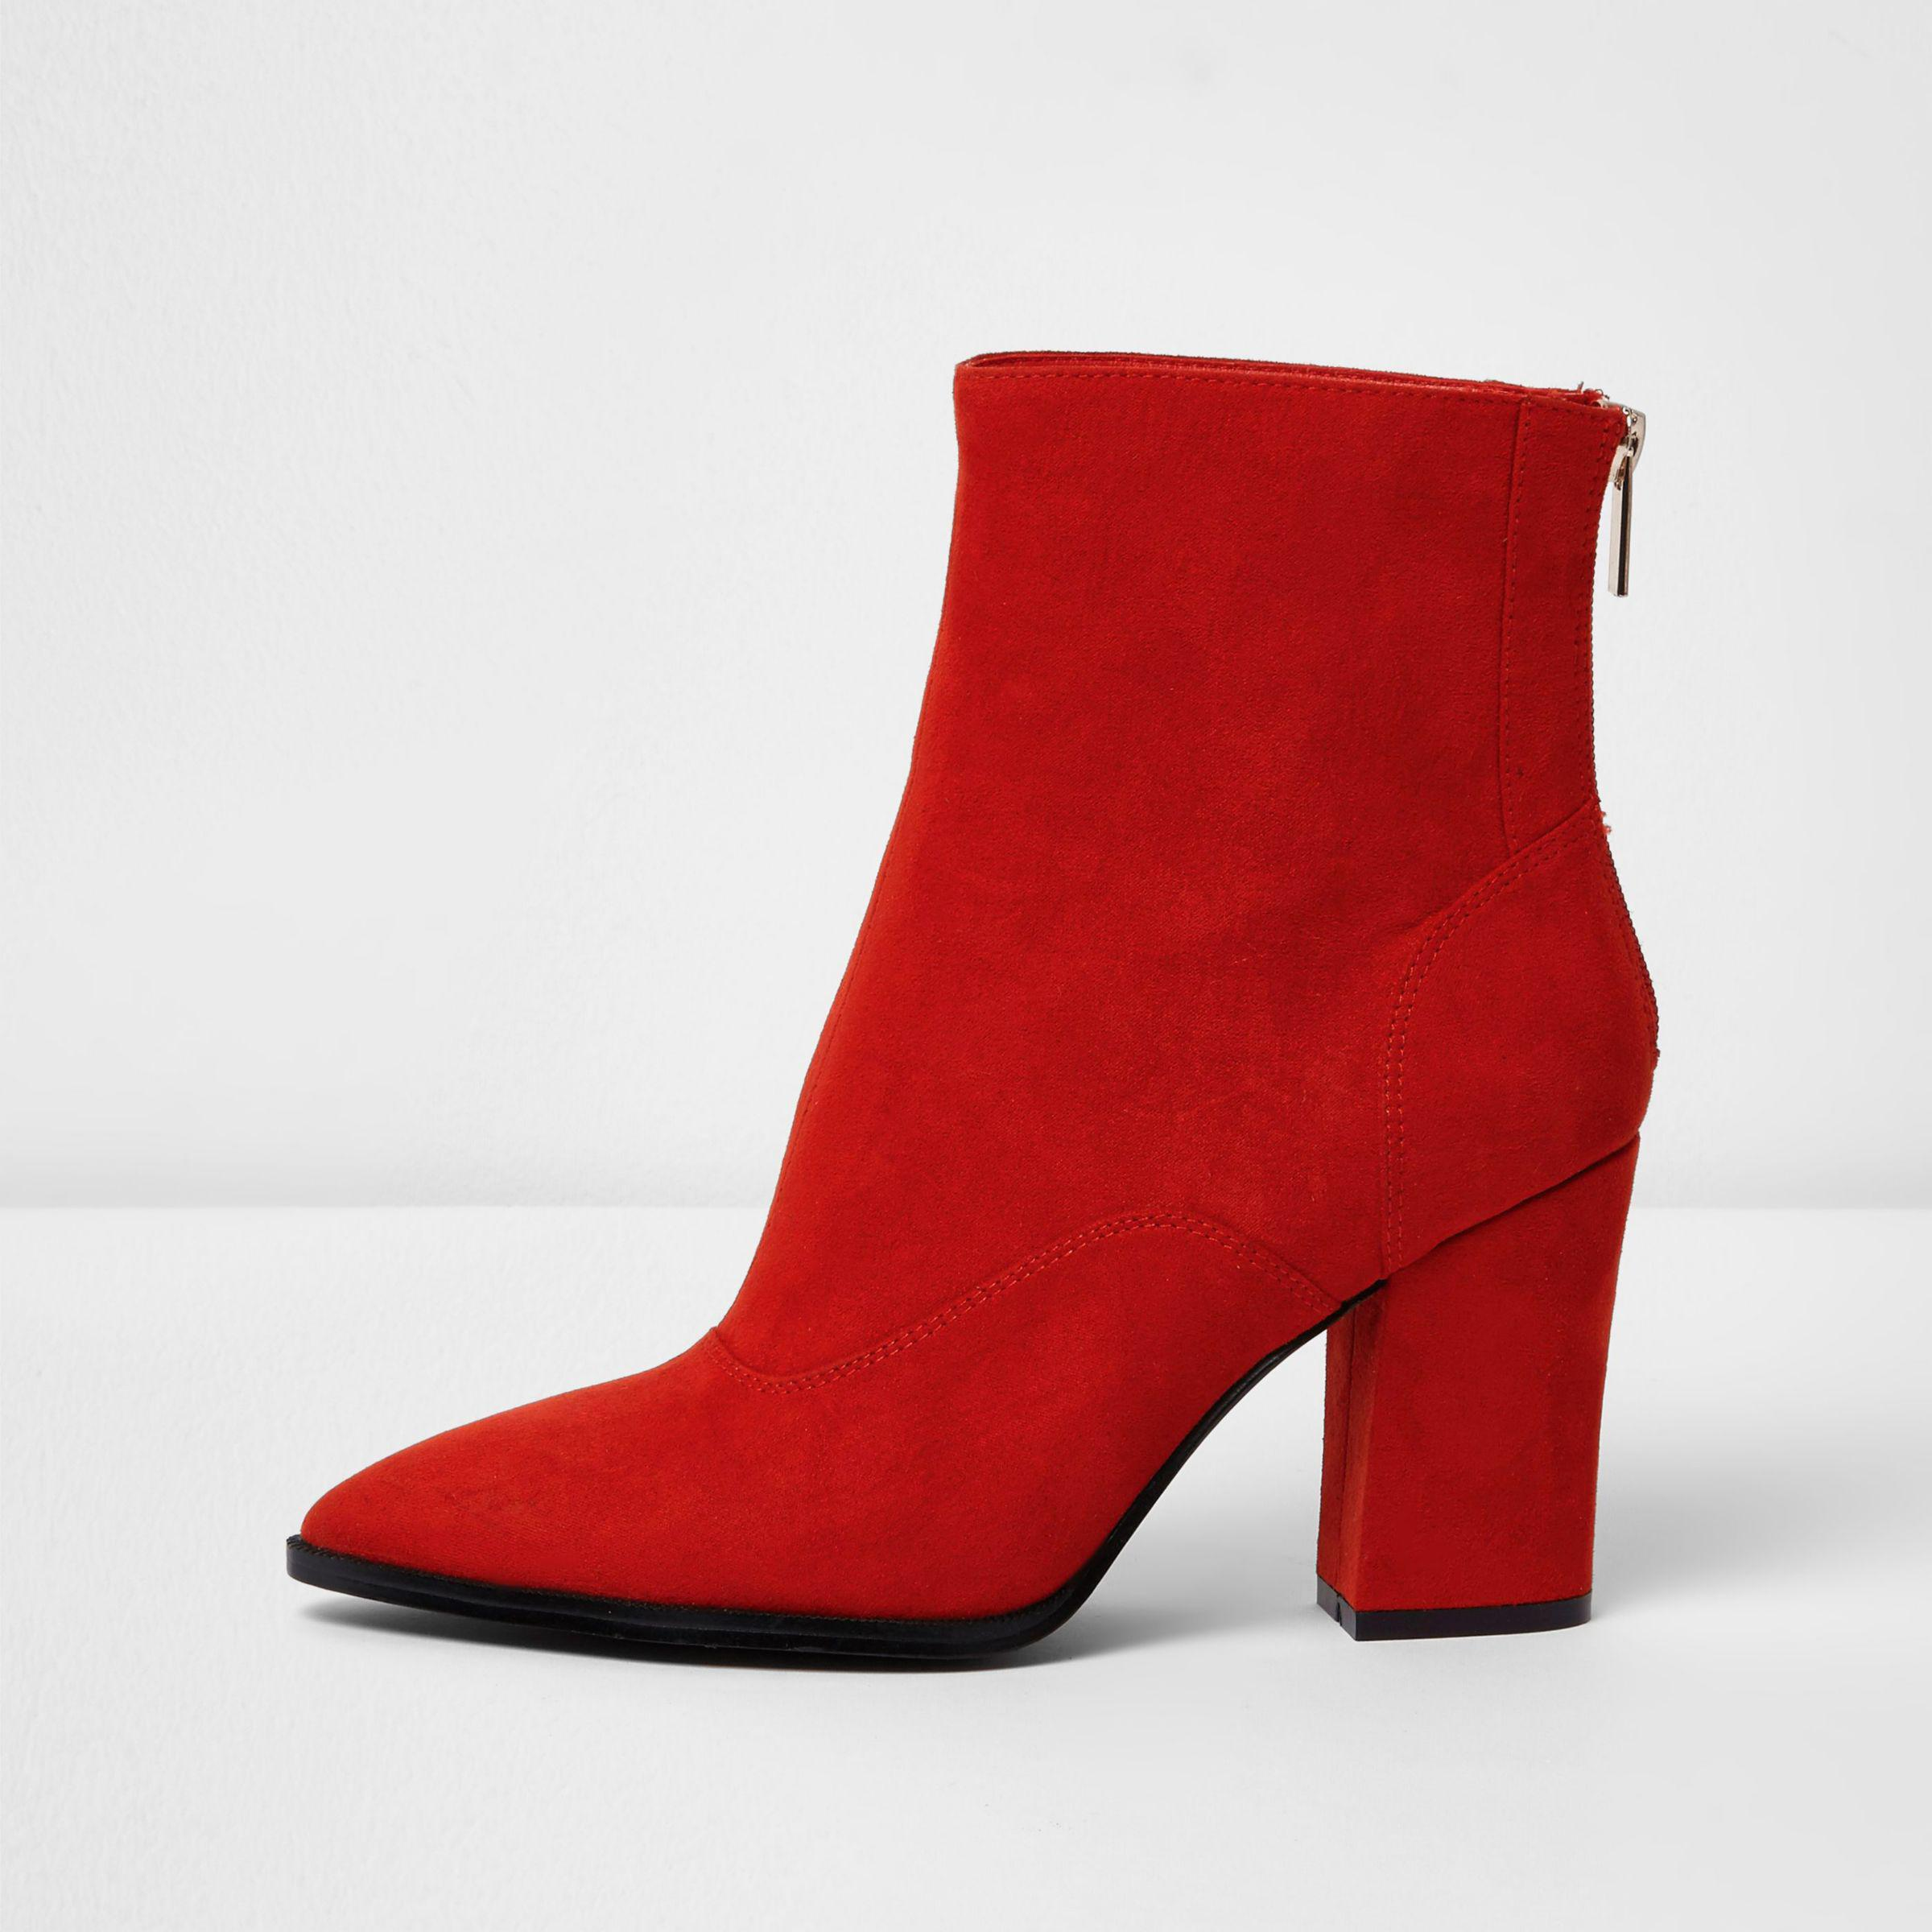 0b3abb81515e River Island Red Block Heel Pointed Boots in Red - Lyst